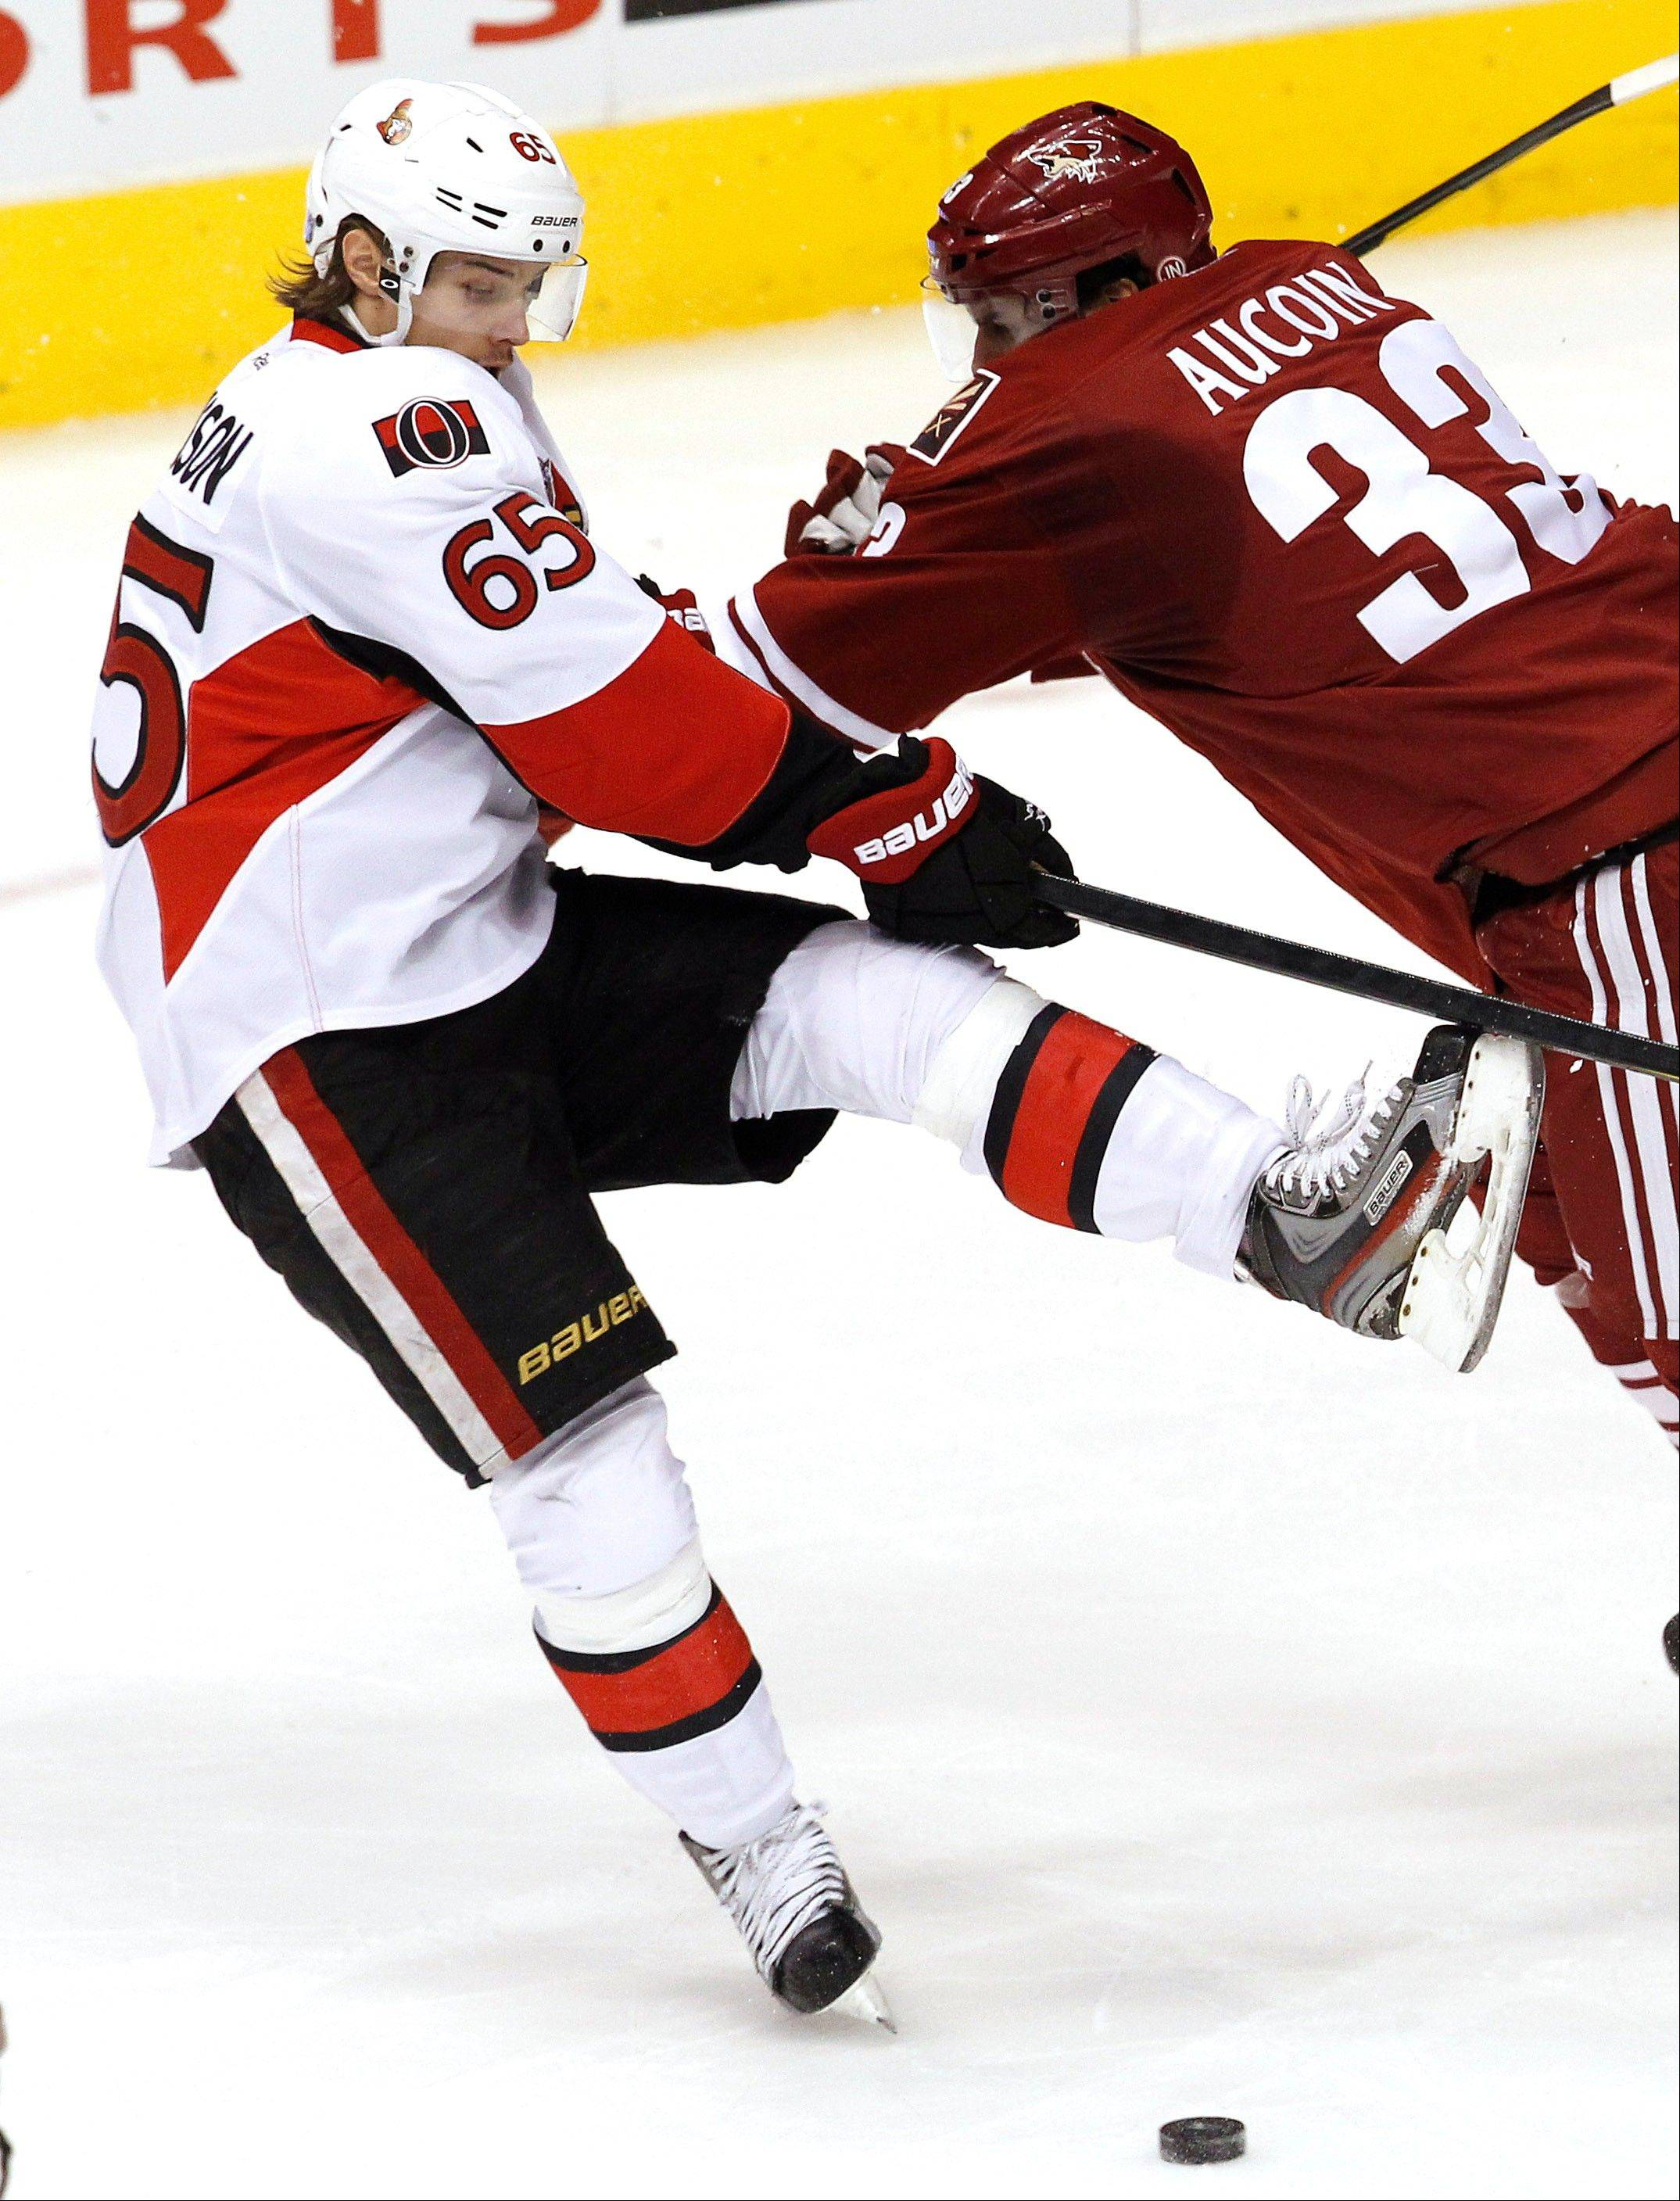 Phoenix's Adrian Aucoin checks Ottawa Senators' Erik Karlsson in a game on Tuesday. Karlsson was the first player chosen by Daniel Alfredsson, who is one of the captains for Sunday's NHL All-Star Game.